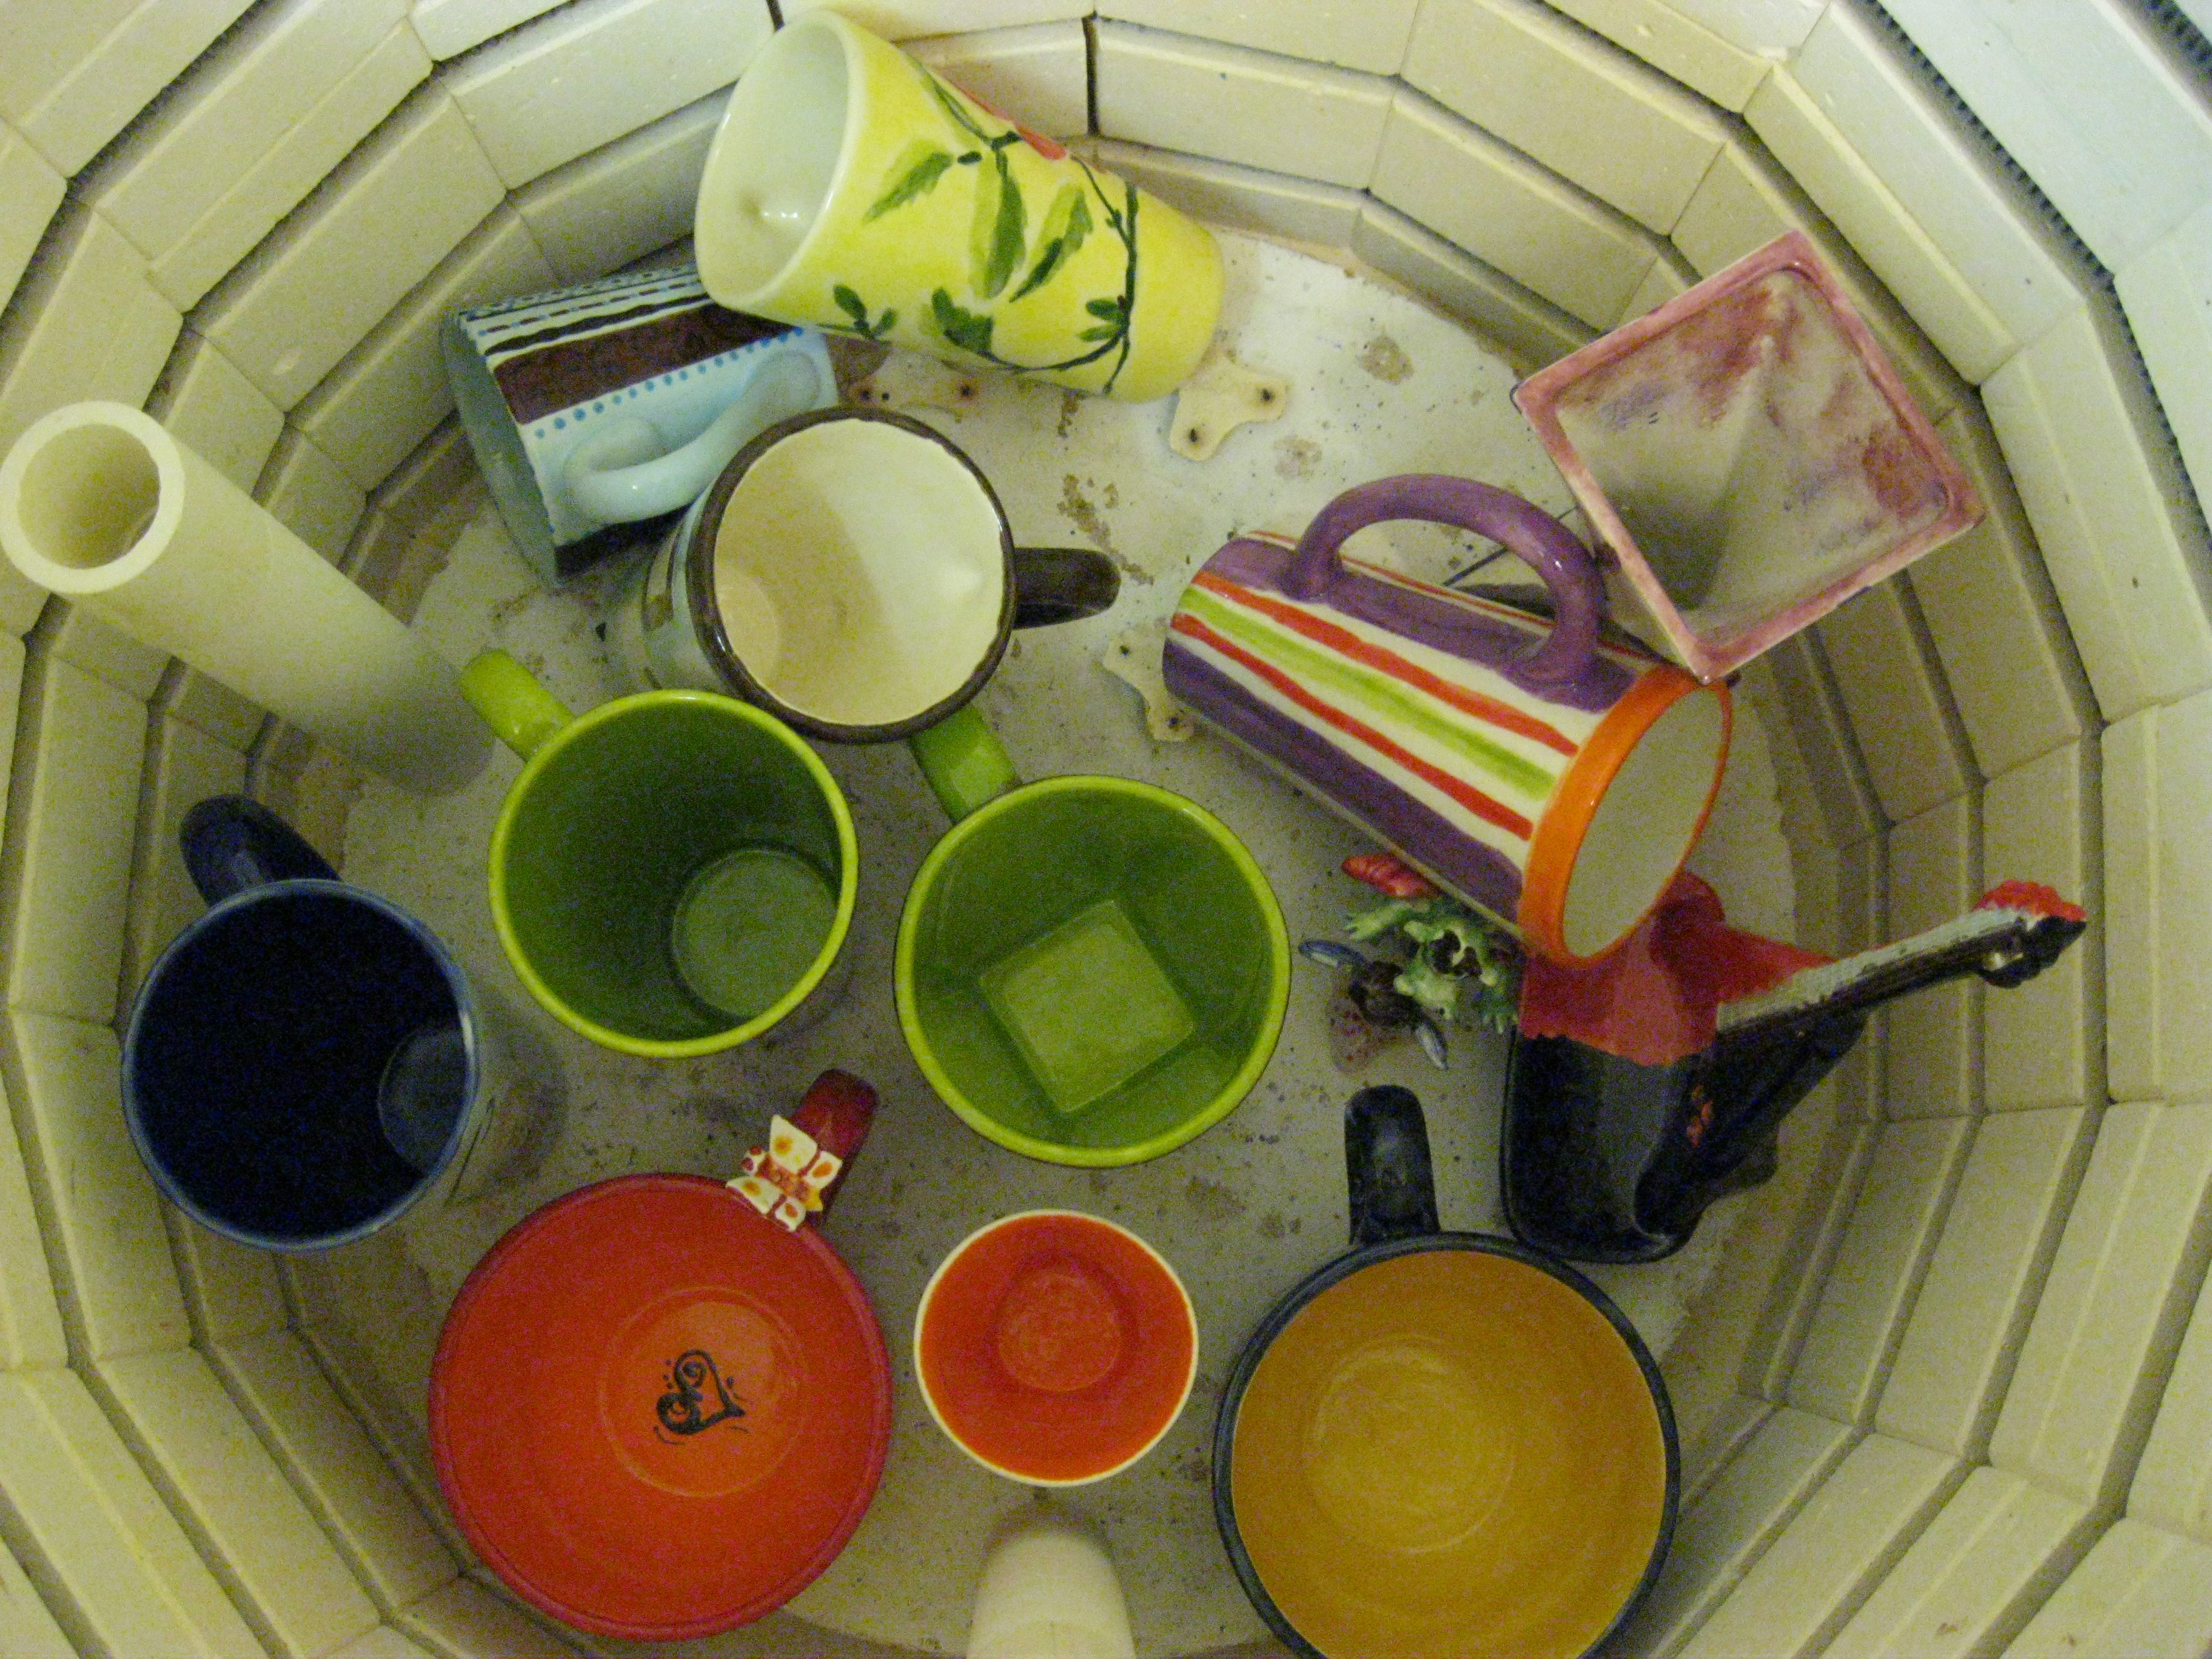 opening our kiln